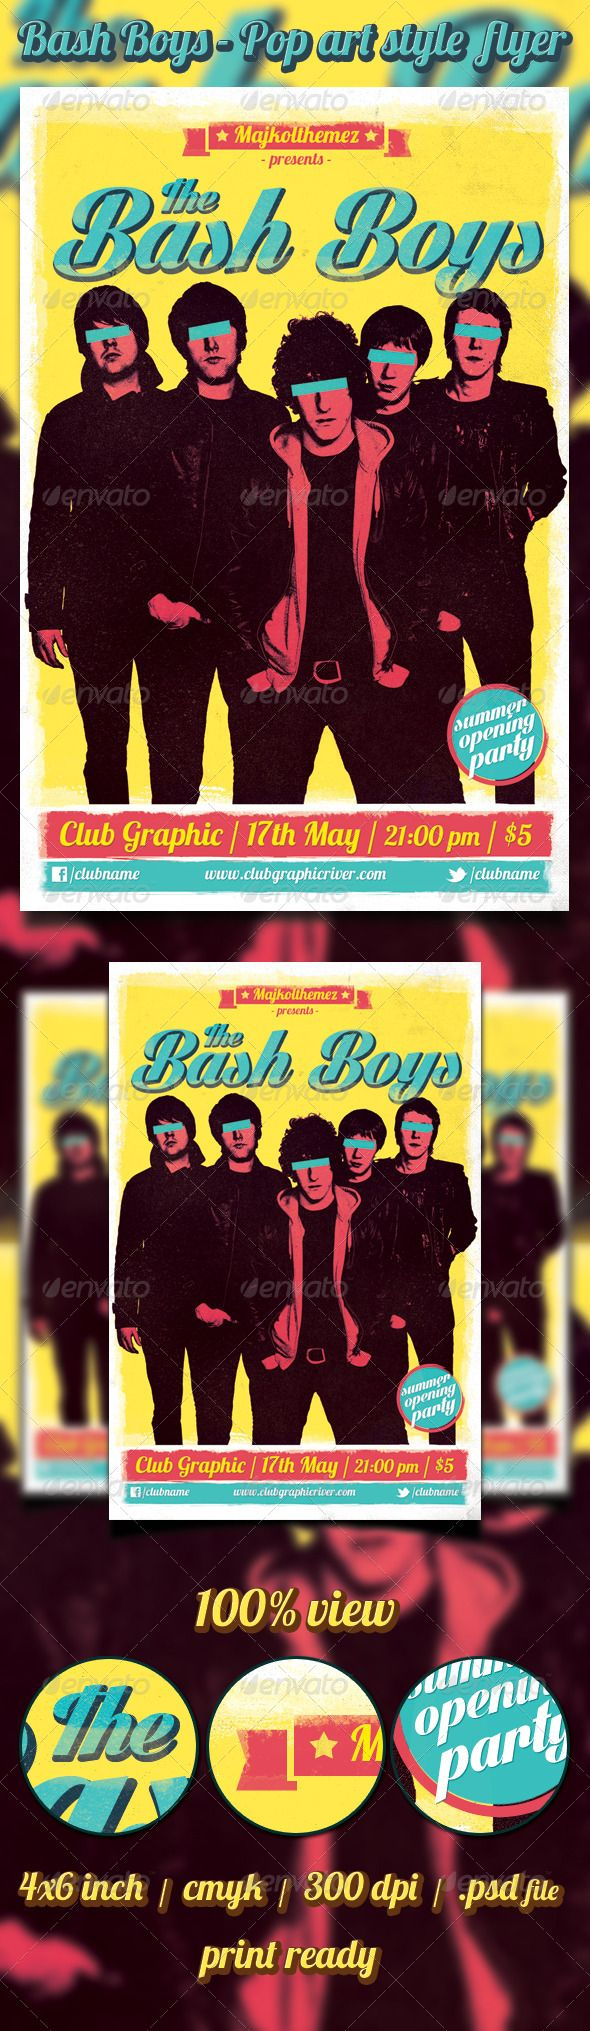 Bash Boys  Pop Art Style Flyer  Music Flyer Art Styles And